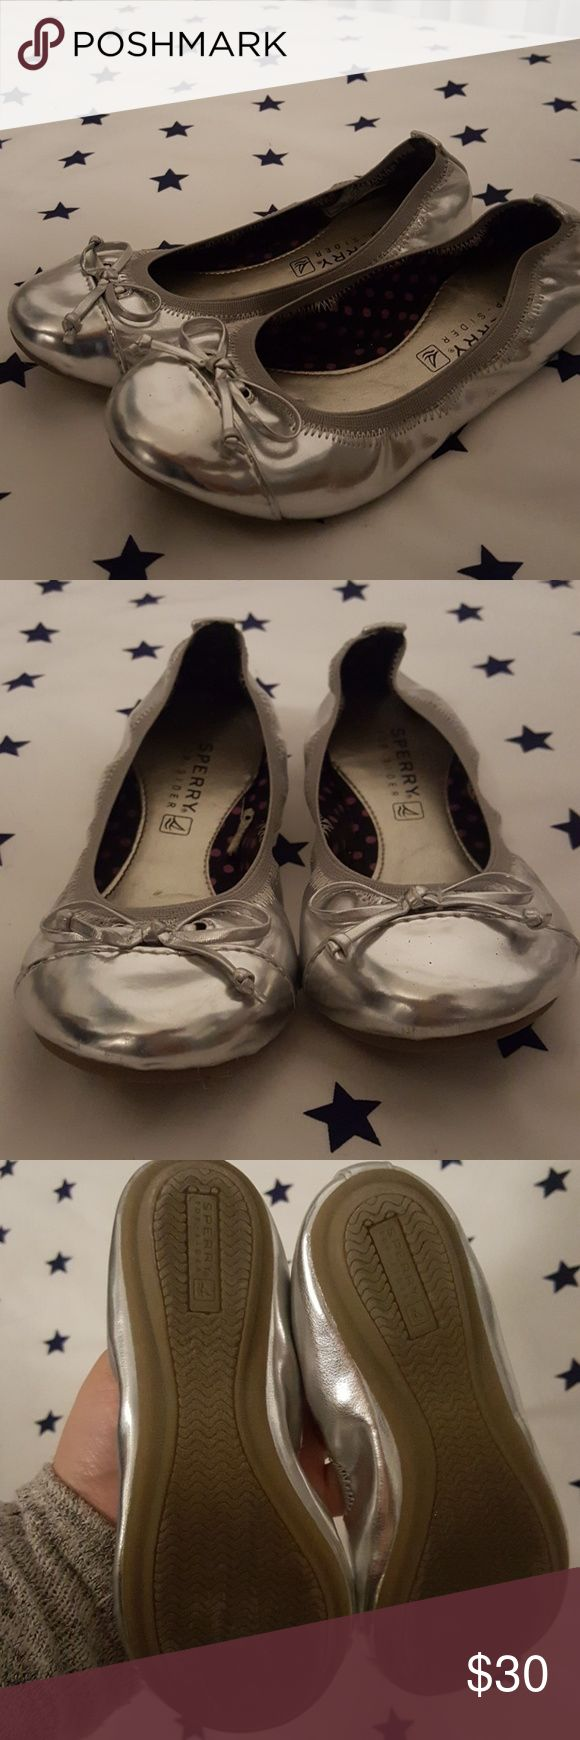 Sperry Top-sider shoes Sperry Tops in metallic silver. Size 11M for girls These were only worn for a photo shoot. Like new Sperry Top-Sider Shoes Dress Shoes